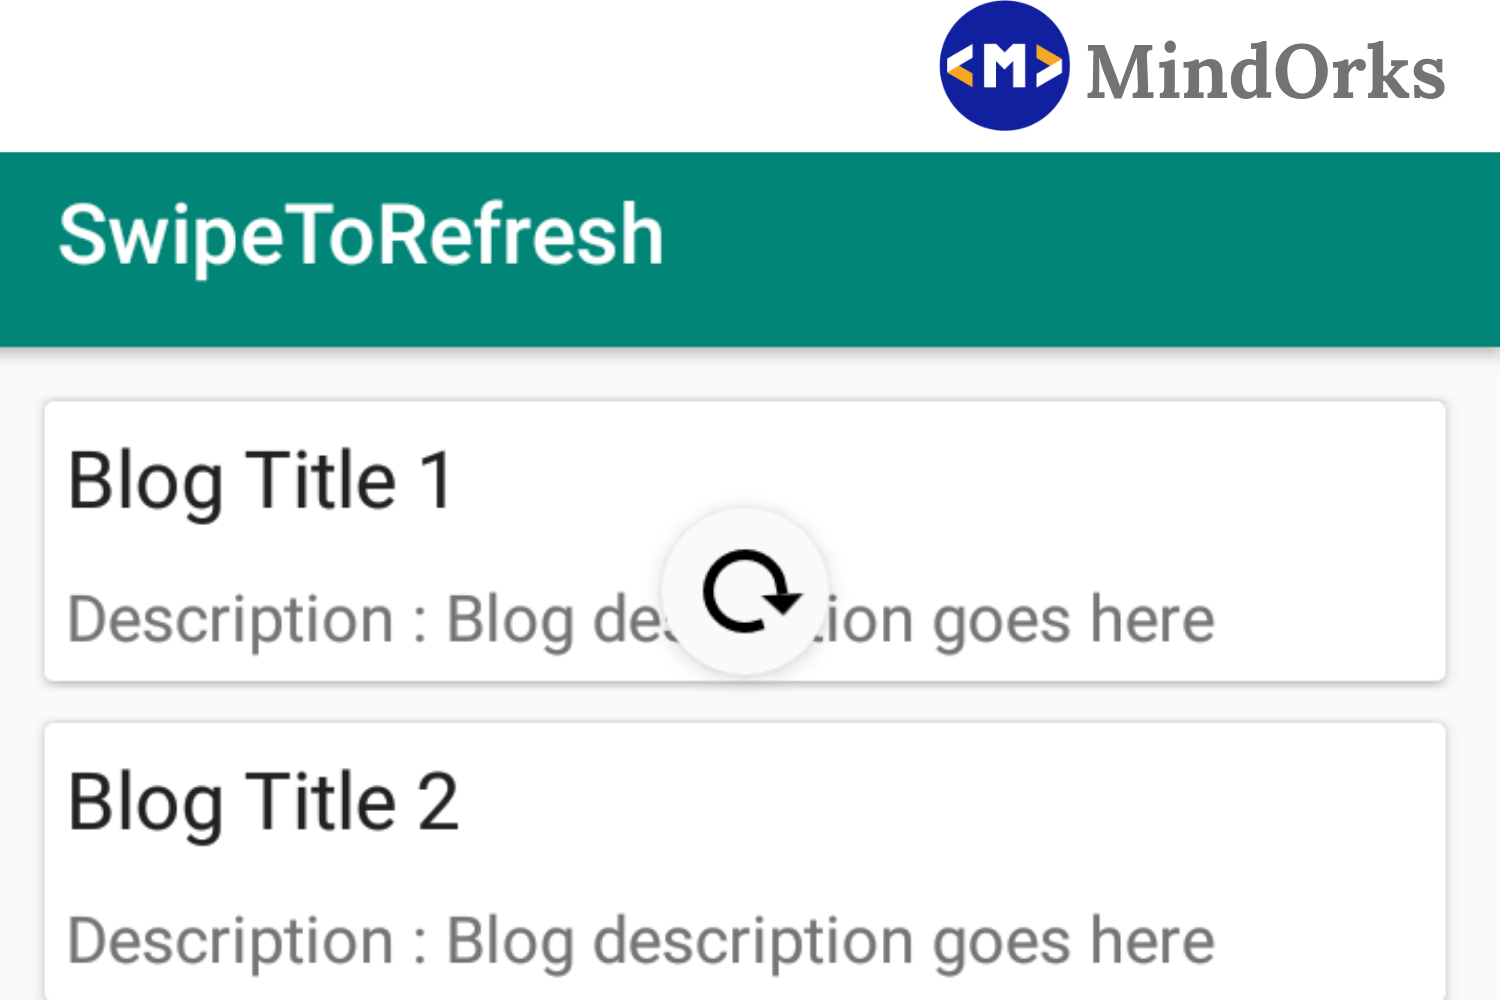 Using Swipe-to-refresh in Android Application